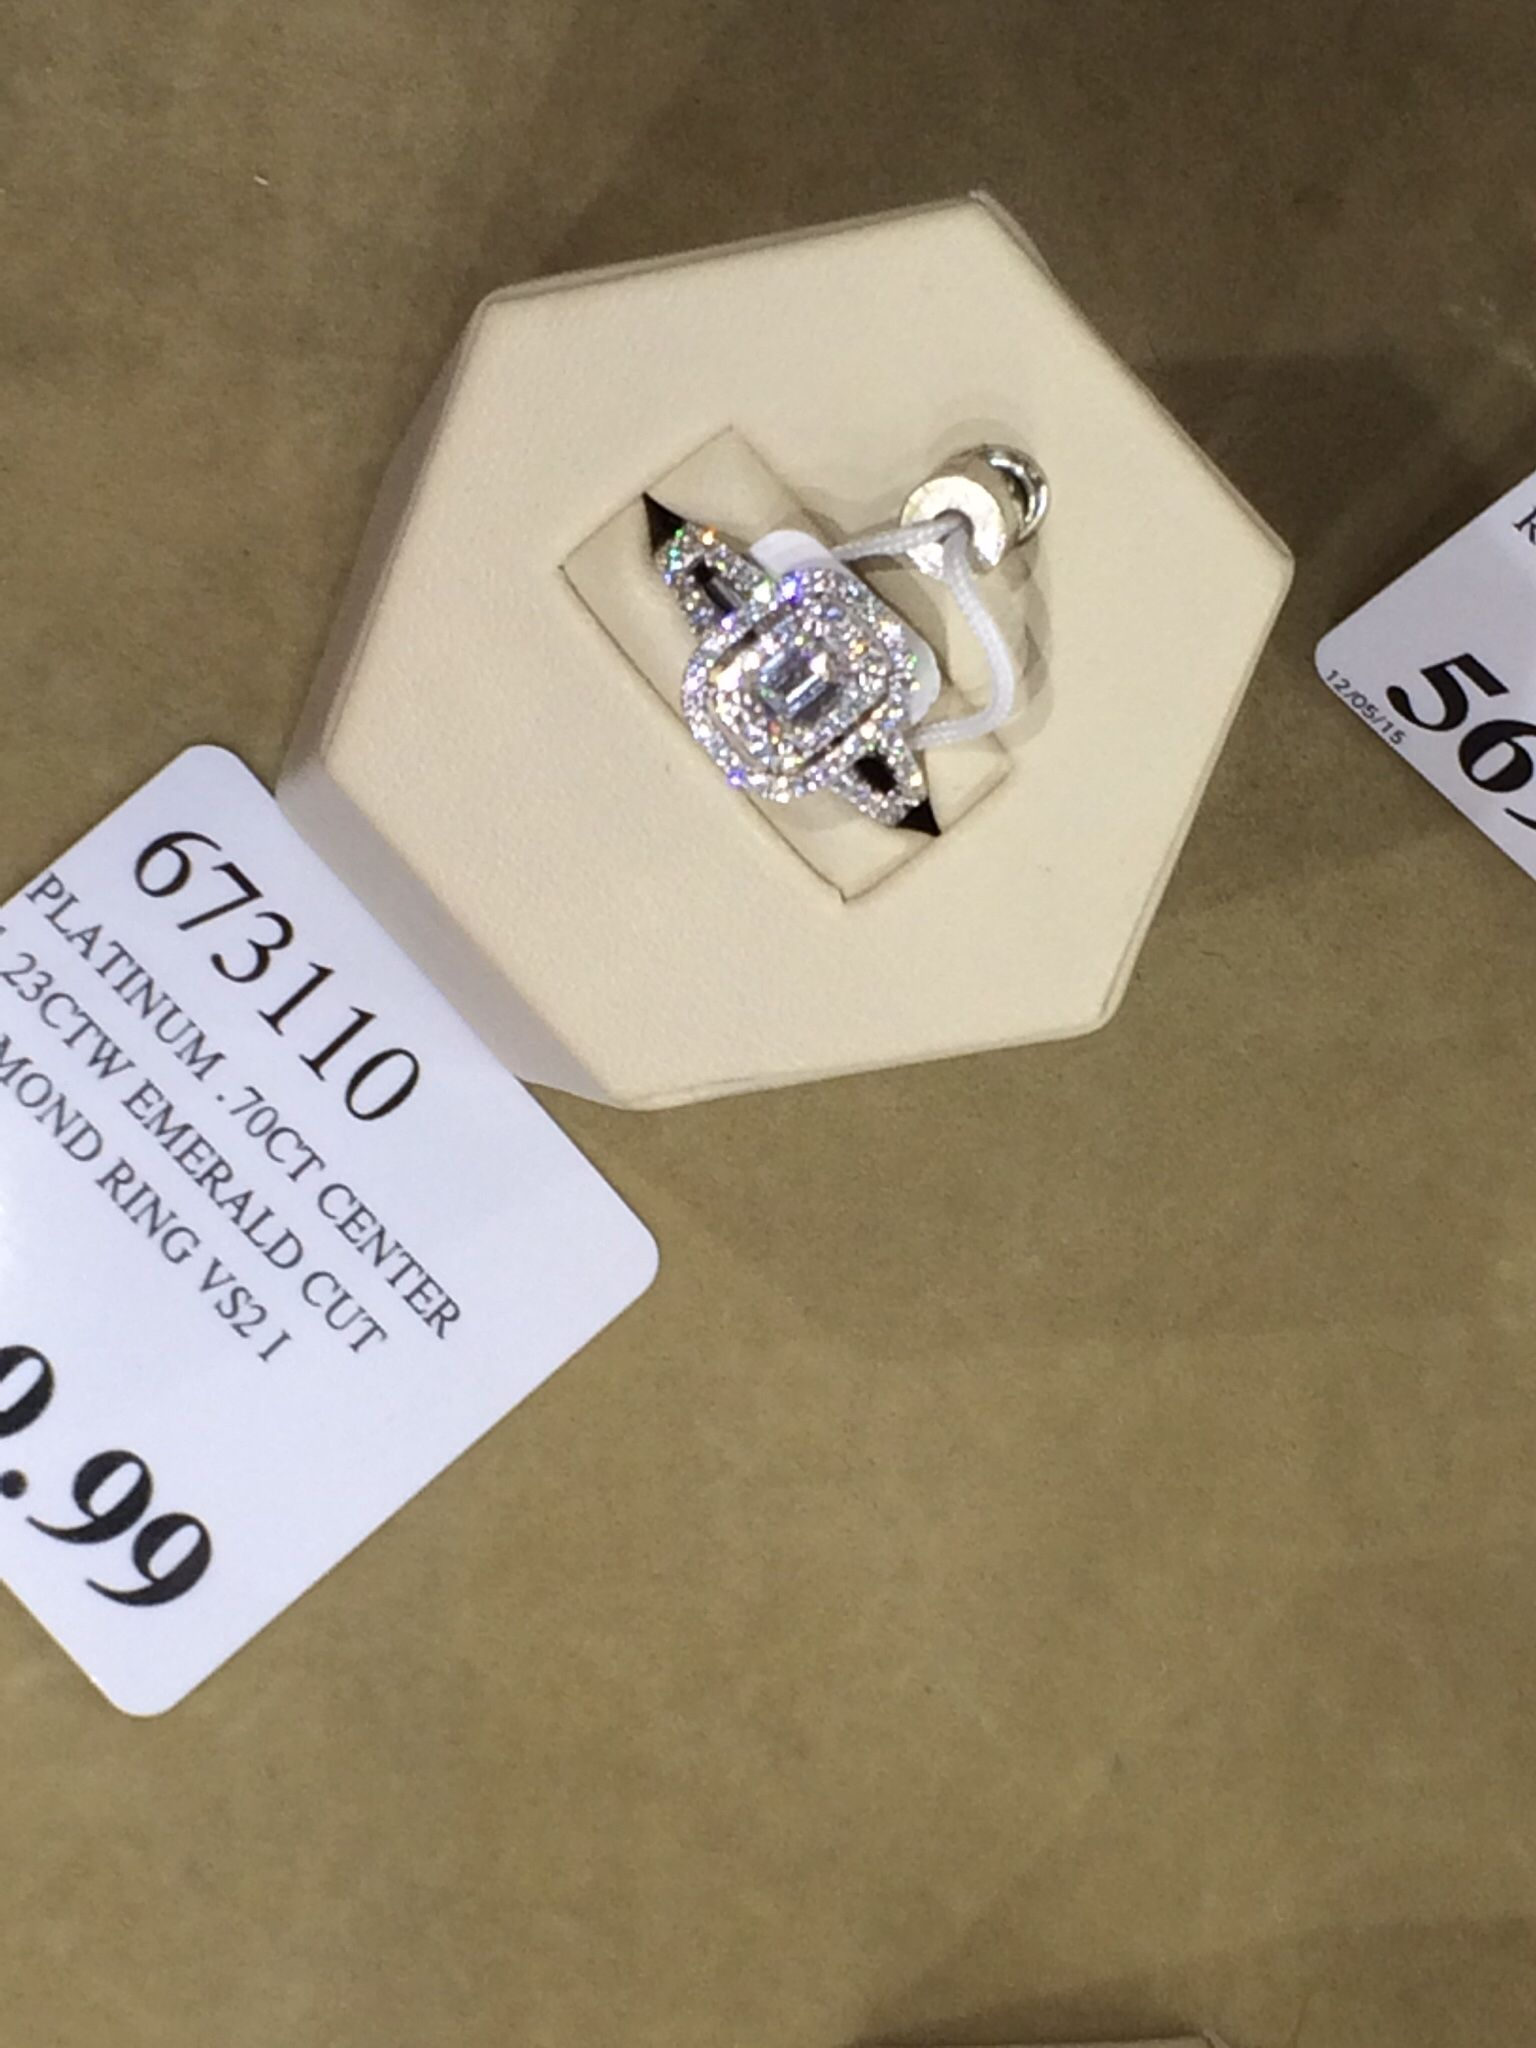 costco 399 costcowedding ringswhite